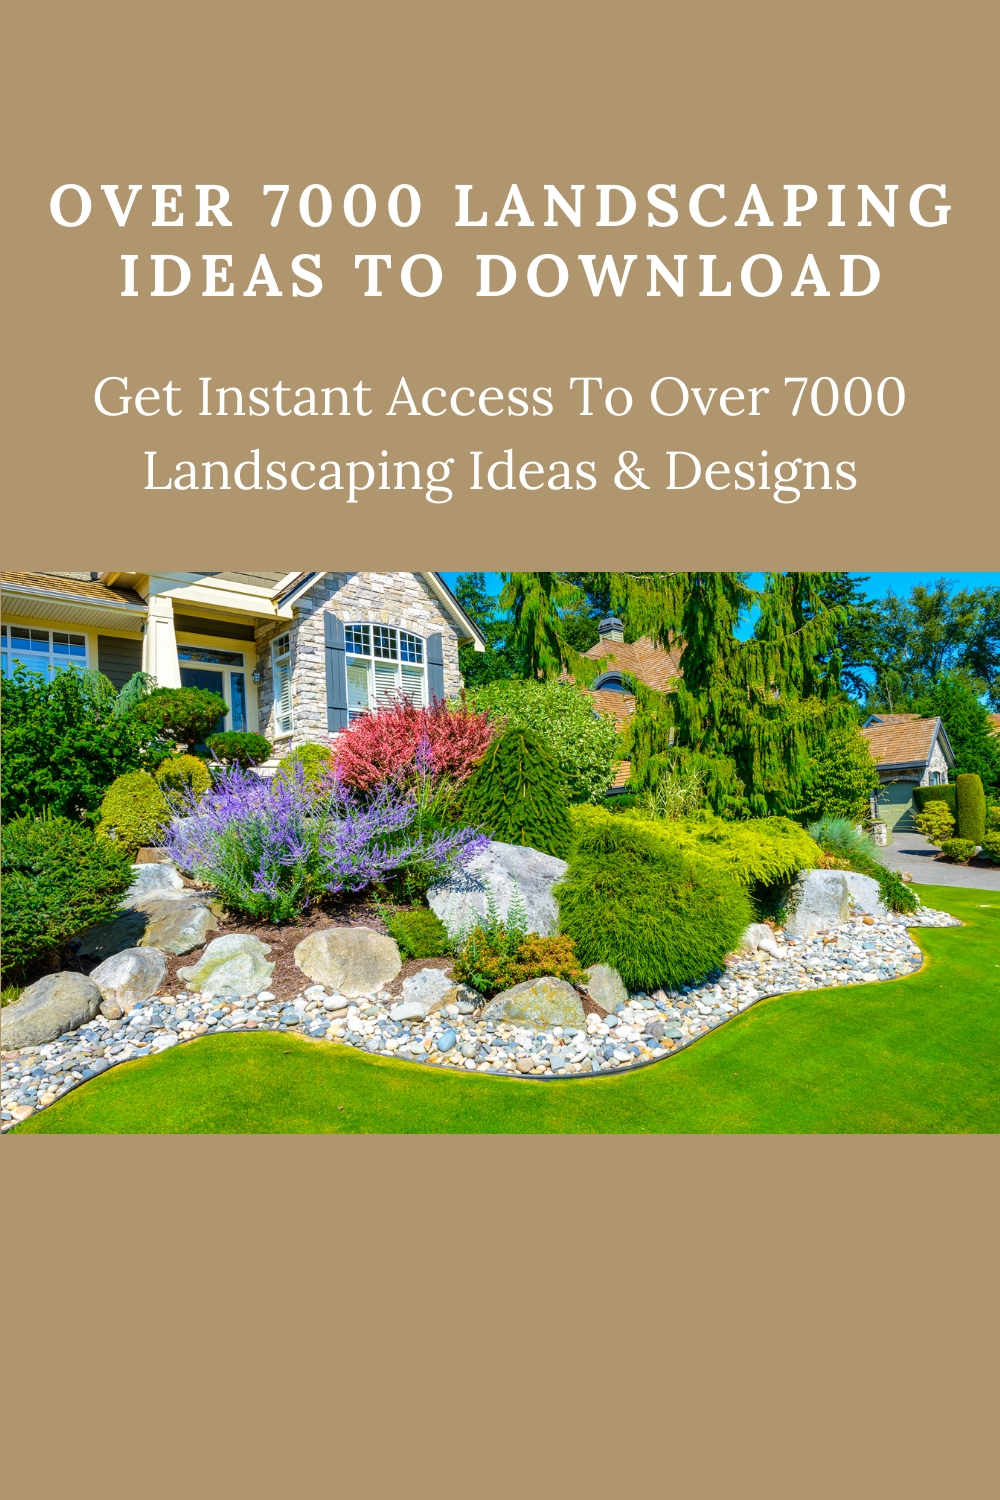 How To Put Landscaping Fabric Over Grass Landscaping Ideas Landscaping With Boulders Landscaping Around House Backyard Firepit Landscaping